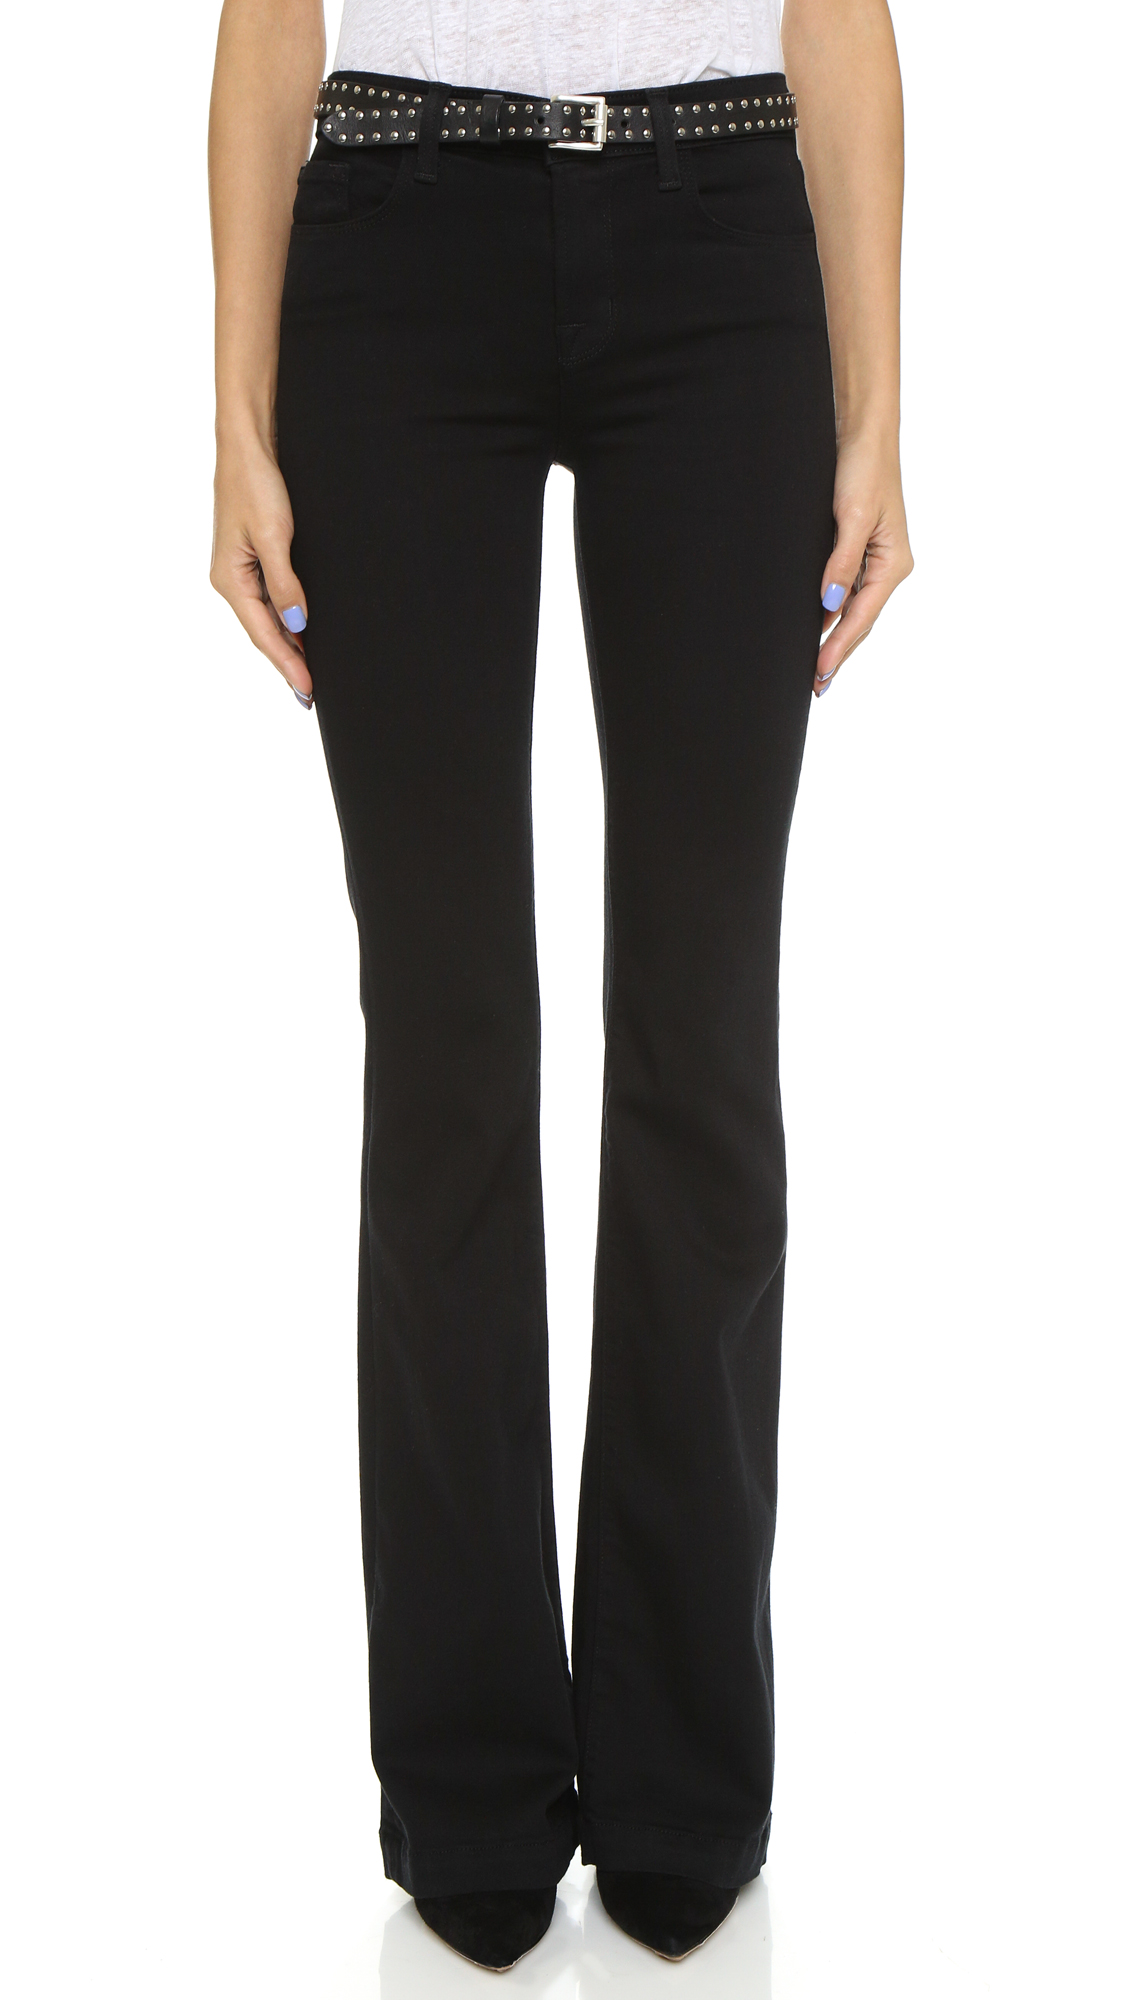 J Brand Maria High Rise Flare Jeans | 15% off first app purchase ...